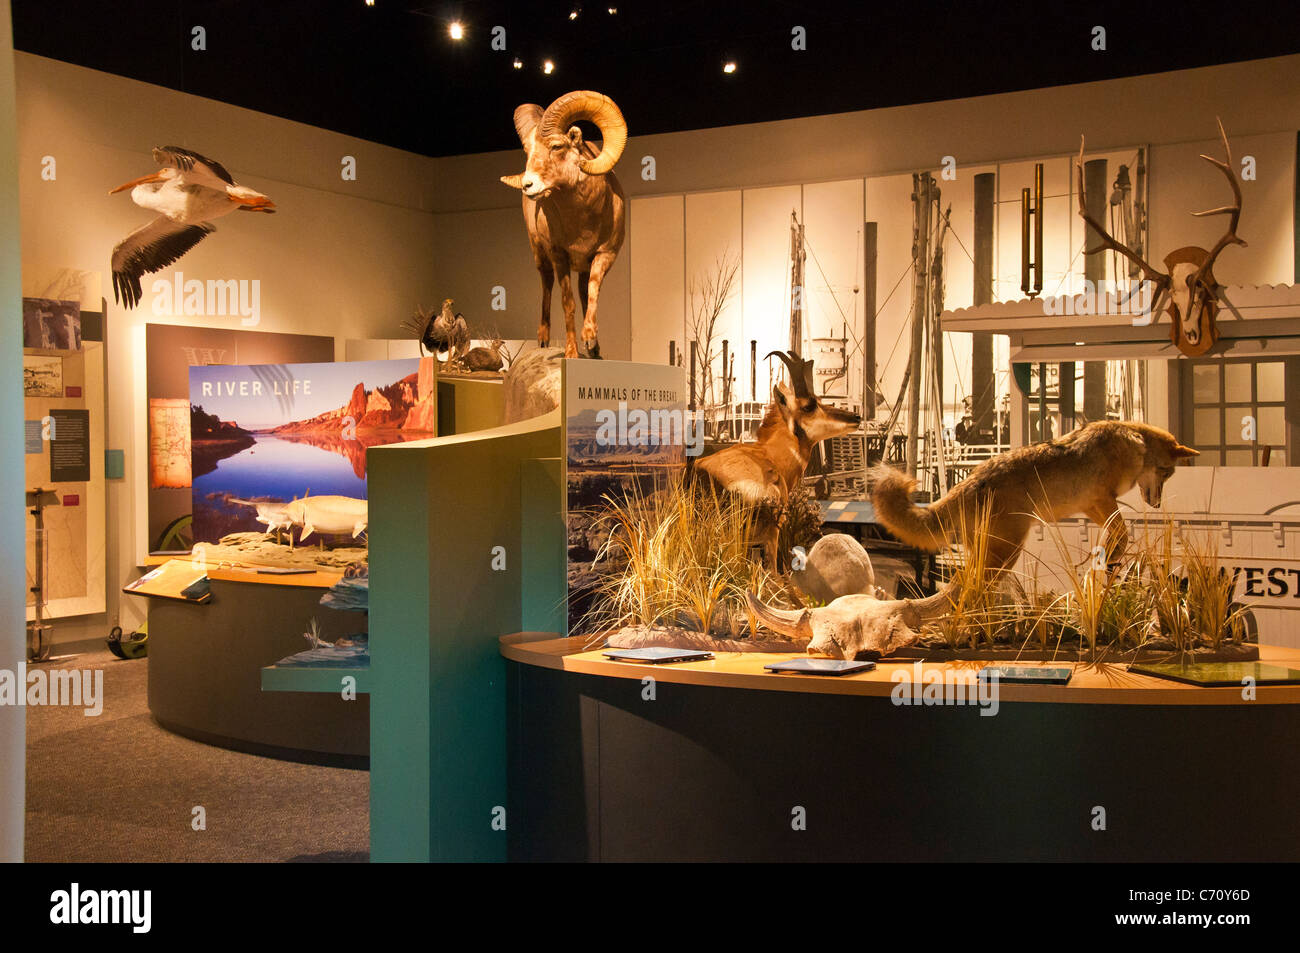 Exhibits in the Upper Missouri Breaks National Monument Interpretive Center, Fort Benton, Montana. Stock Photo